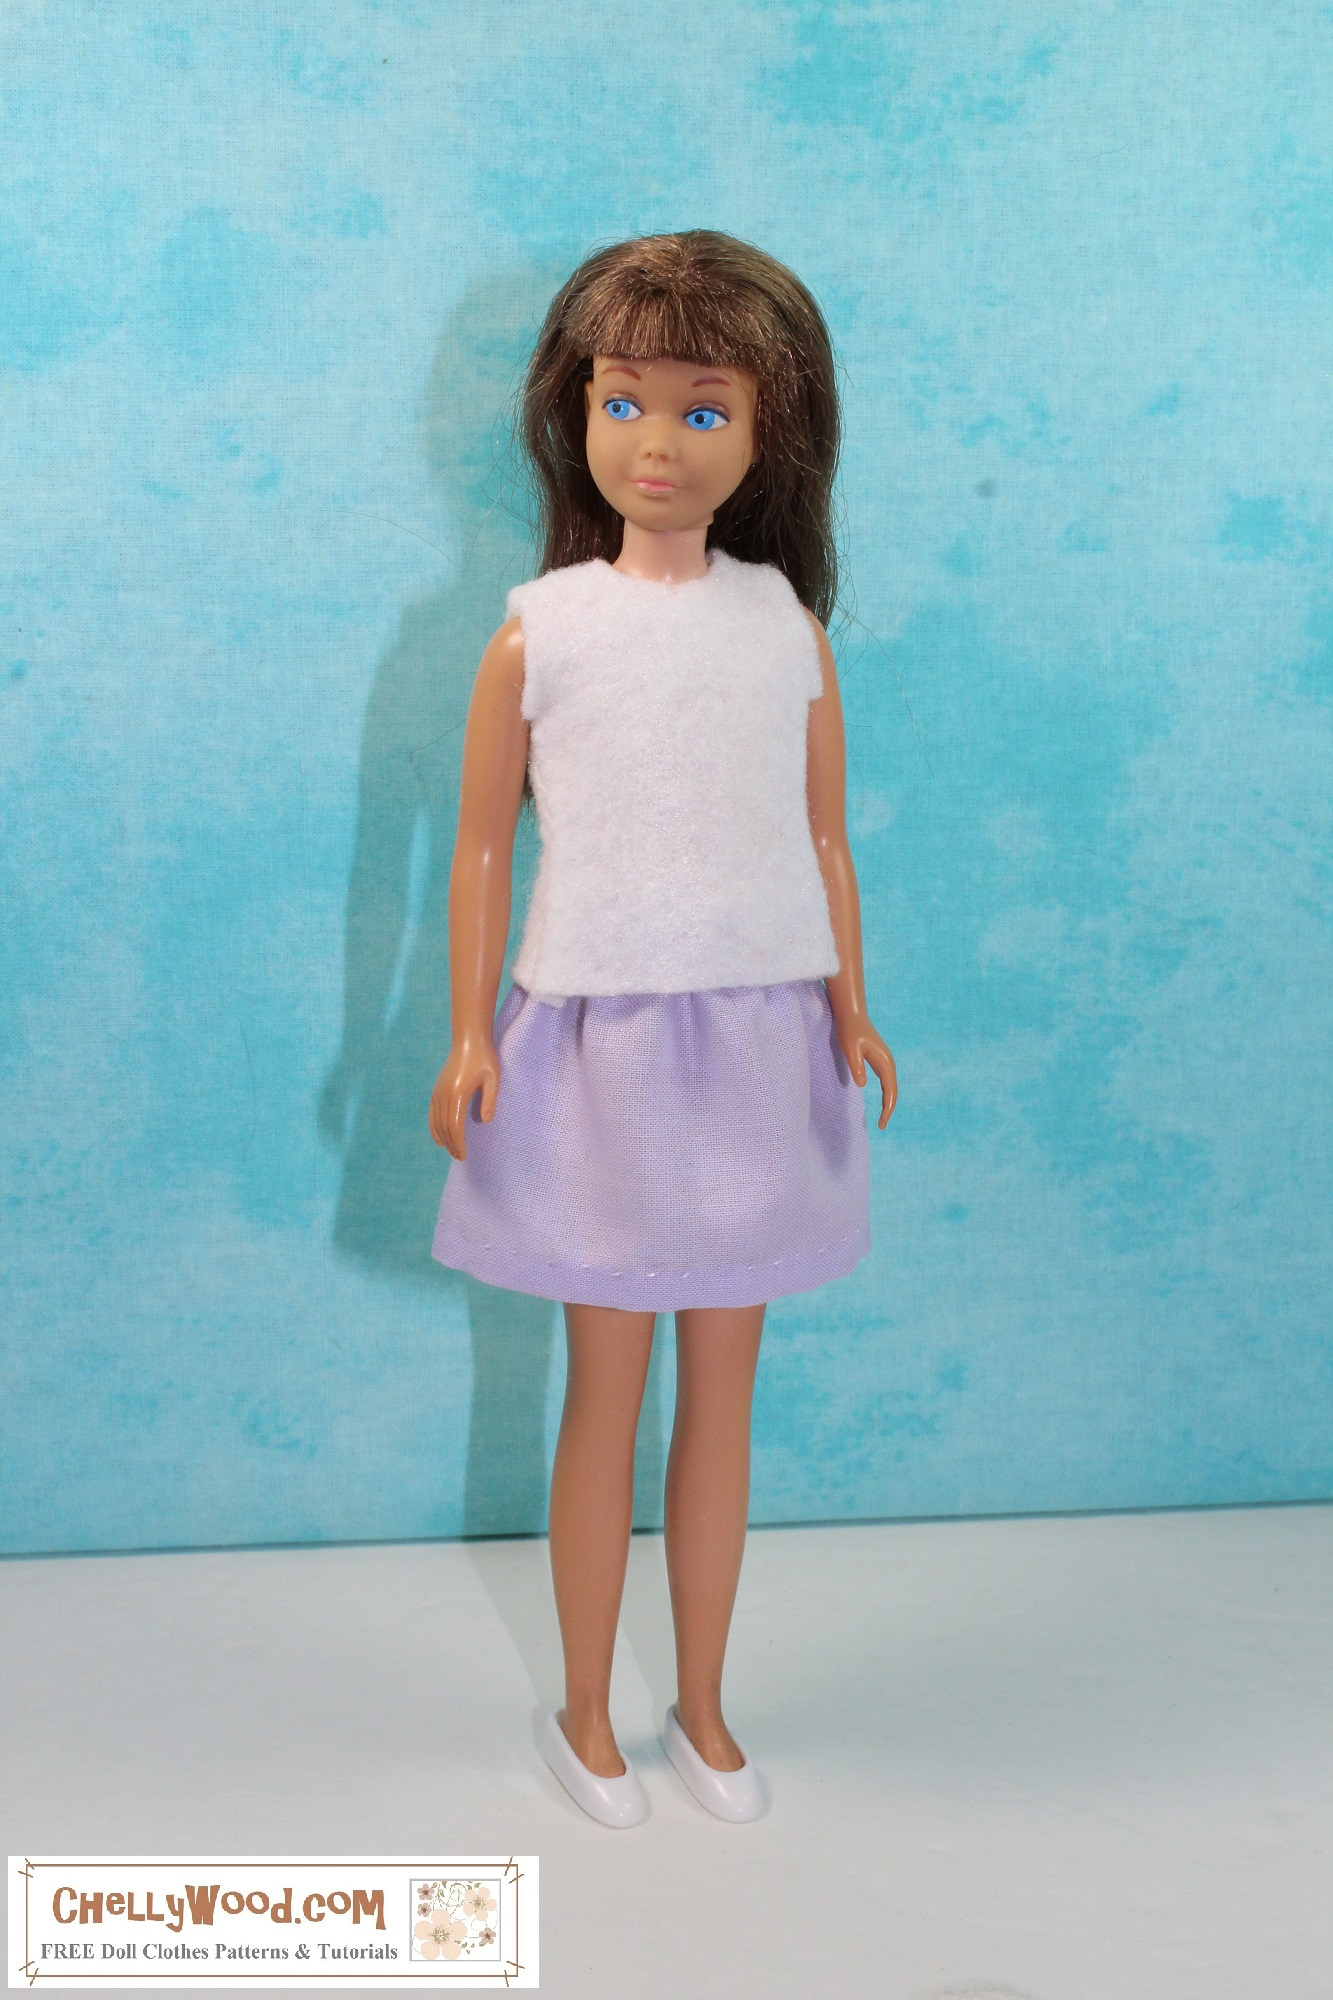 Here we see a vintage Skipper doll from Mattel wearing handmade doll clothes that include an easy-to-sew felt sleeveless summer shirt and an easy sew elastic waist skirt. The felt shirt is white along with the doll's plastic shoes. The skirt is lavender colored, and it is a very short skirt, with the hem just above the knee. She looks adorable with her blue eyes turned slightly to her right. She has dark bangs and long brown hair. She stands before a turquoise colored background. If you'd like to make these cute and easy to sew doll clothes for your vintage Skipper or a similar sized 9 inch doll, click on the link in the caption. It will take you to a page where the free printable PDF sewing patterns are accompanied by links to the tutorials for making both the shirt and the skirt.